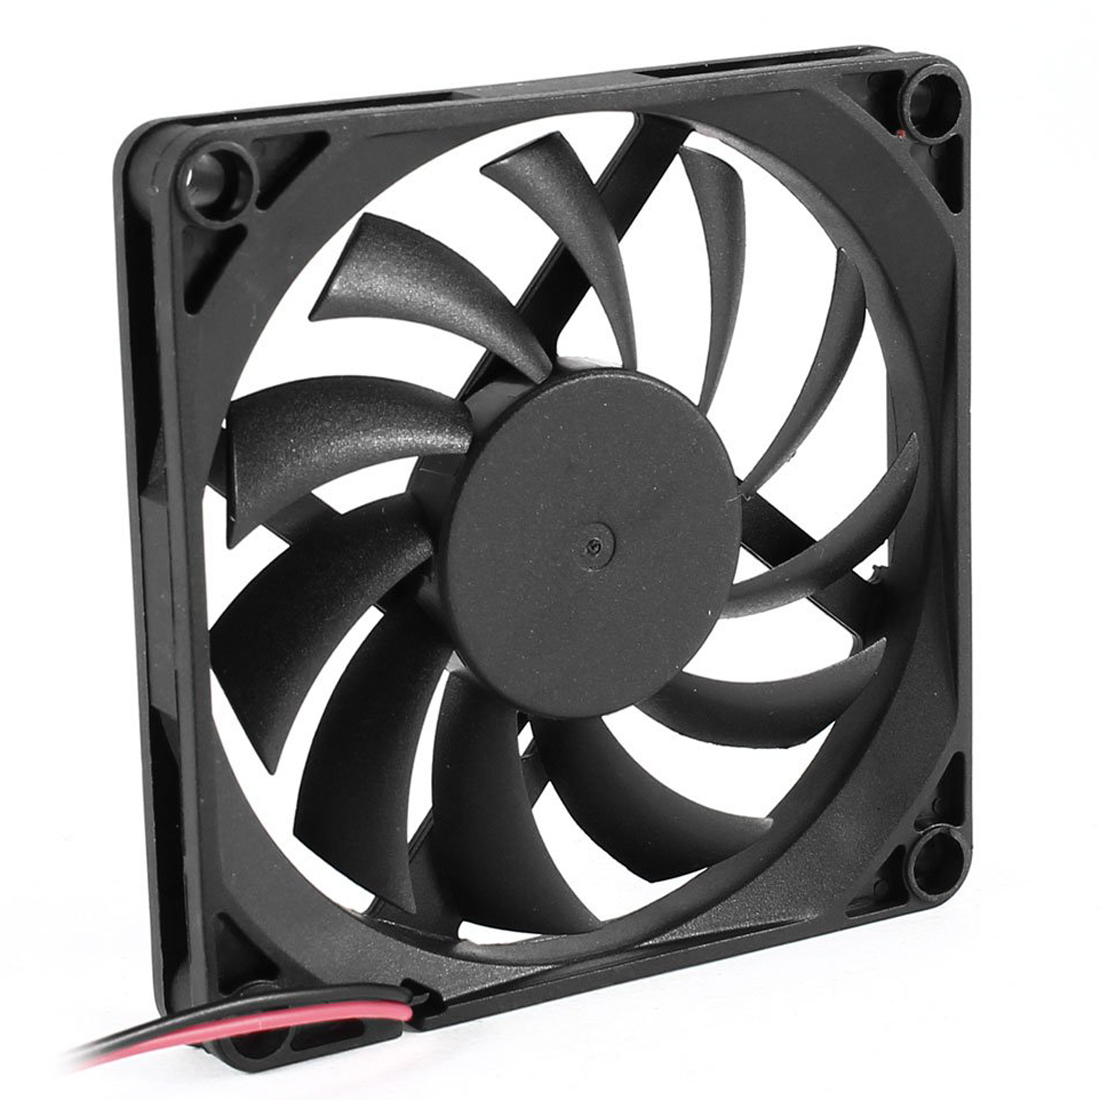 80mm 2 Pin Connector Cooling Fan for Computer Case CPU Cooler Radiator computer cooler radiator with heatsink heatpipe cooling fan for hd6970 hd6950 grahics card vga cooler